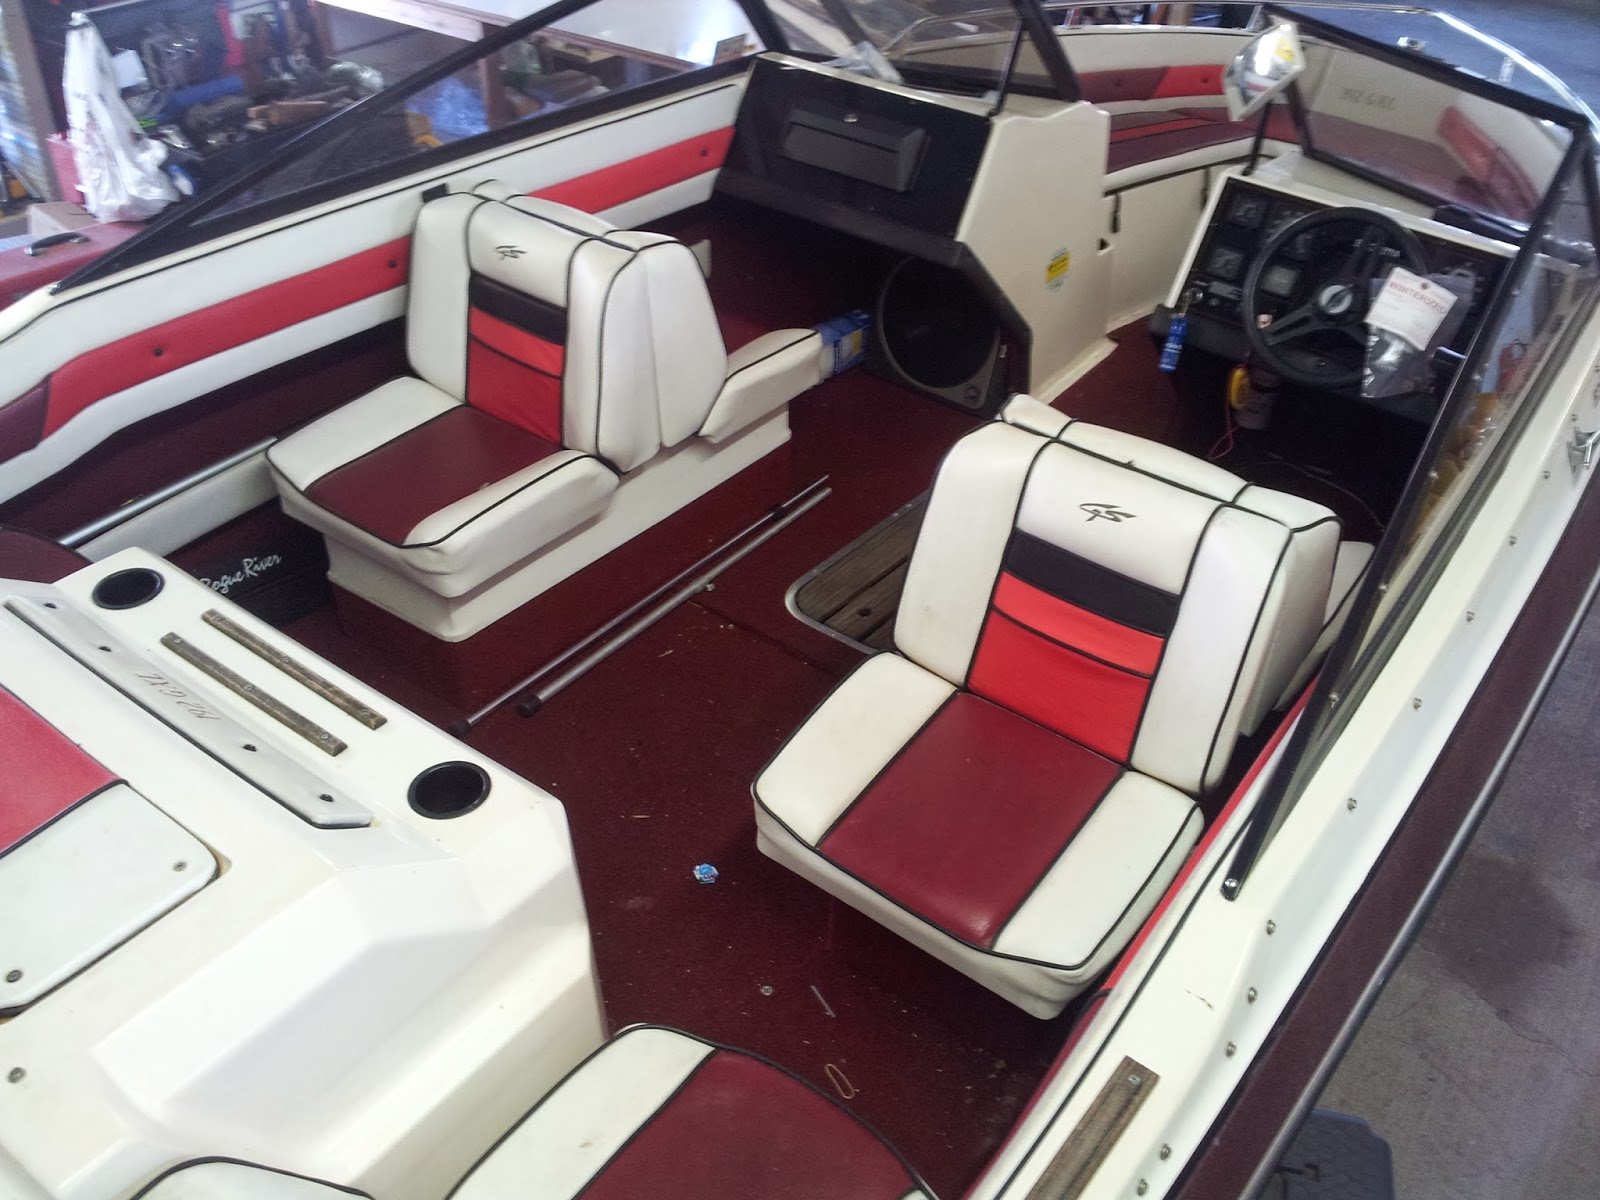 Homestyle Custom Upholstery And Awning Before During And After Pictures Of A Complete Boat